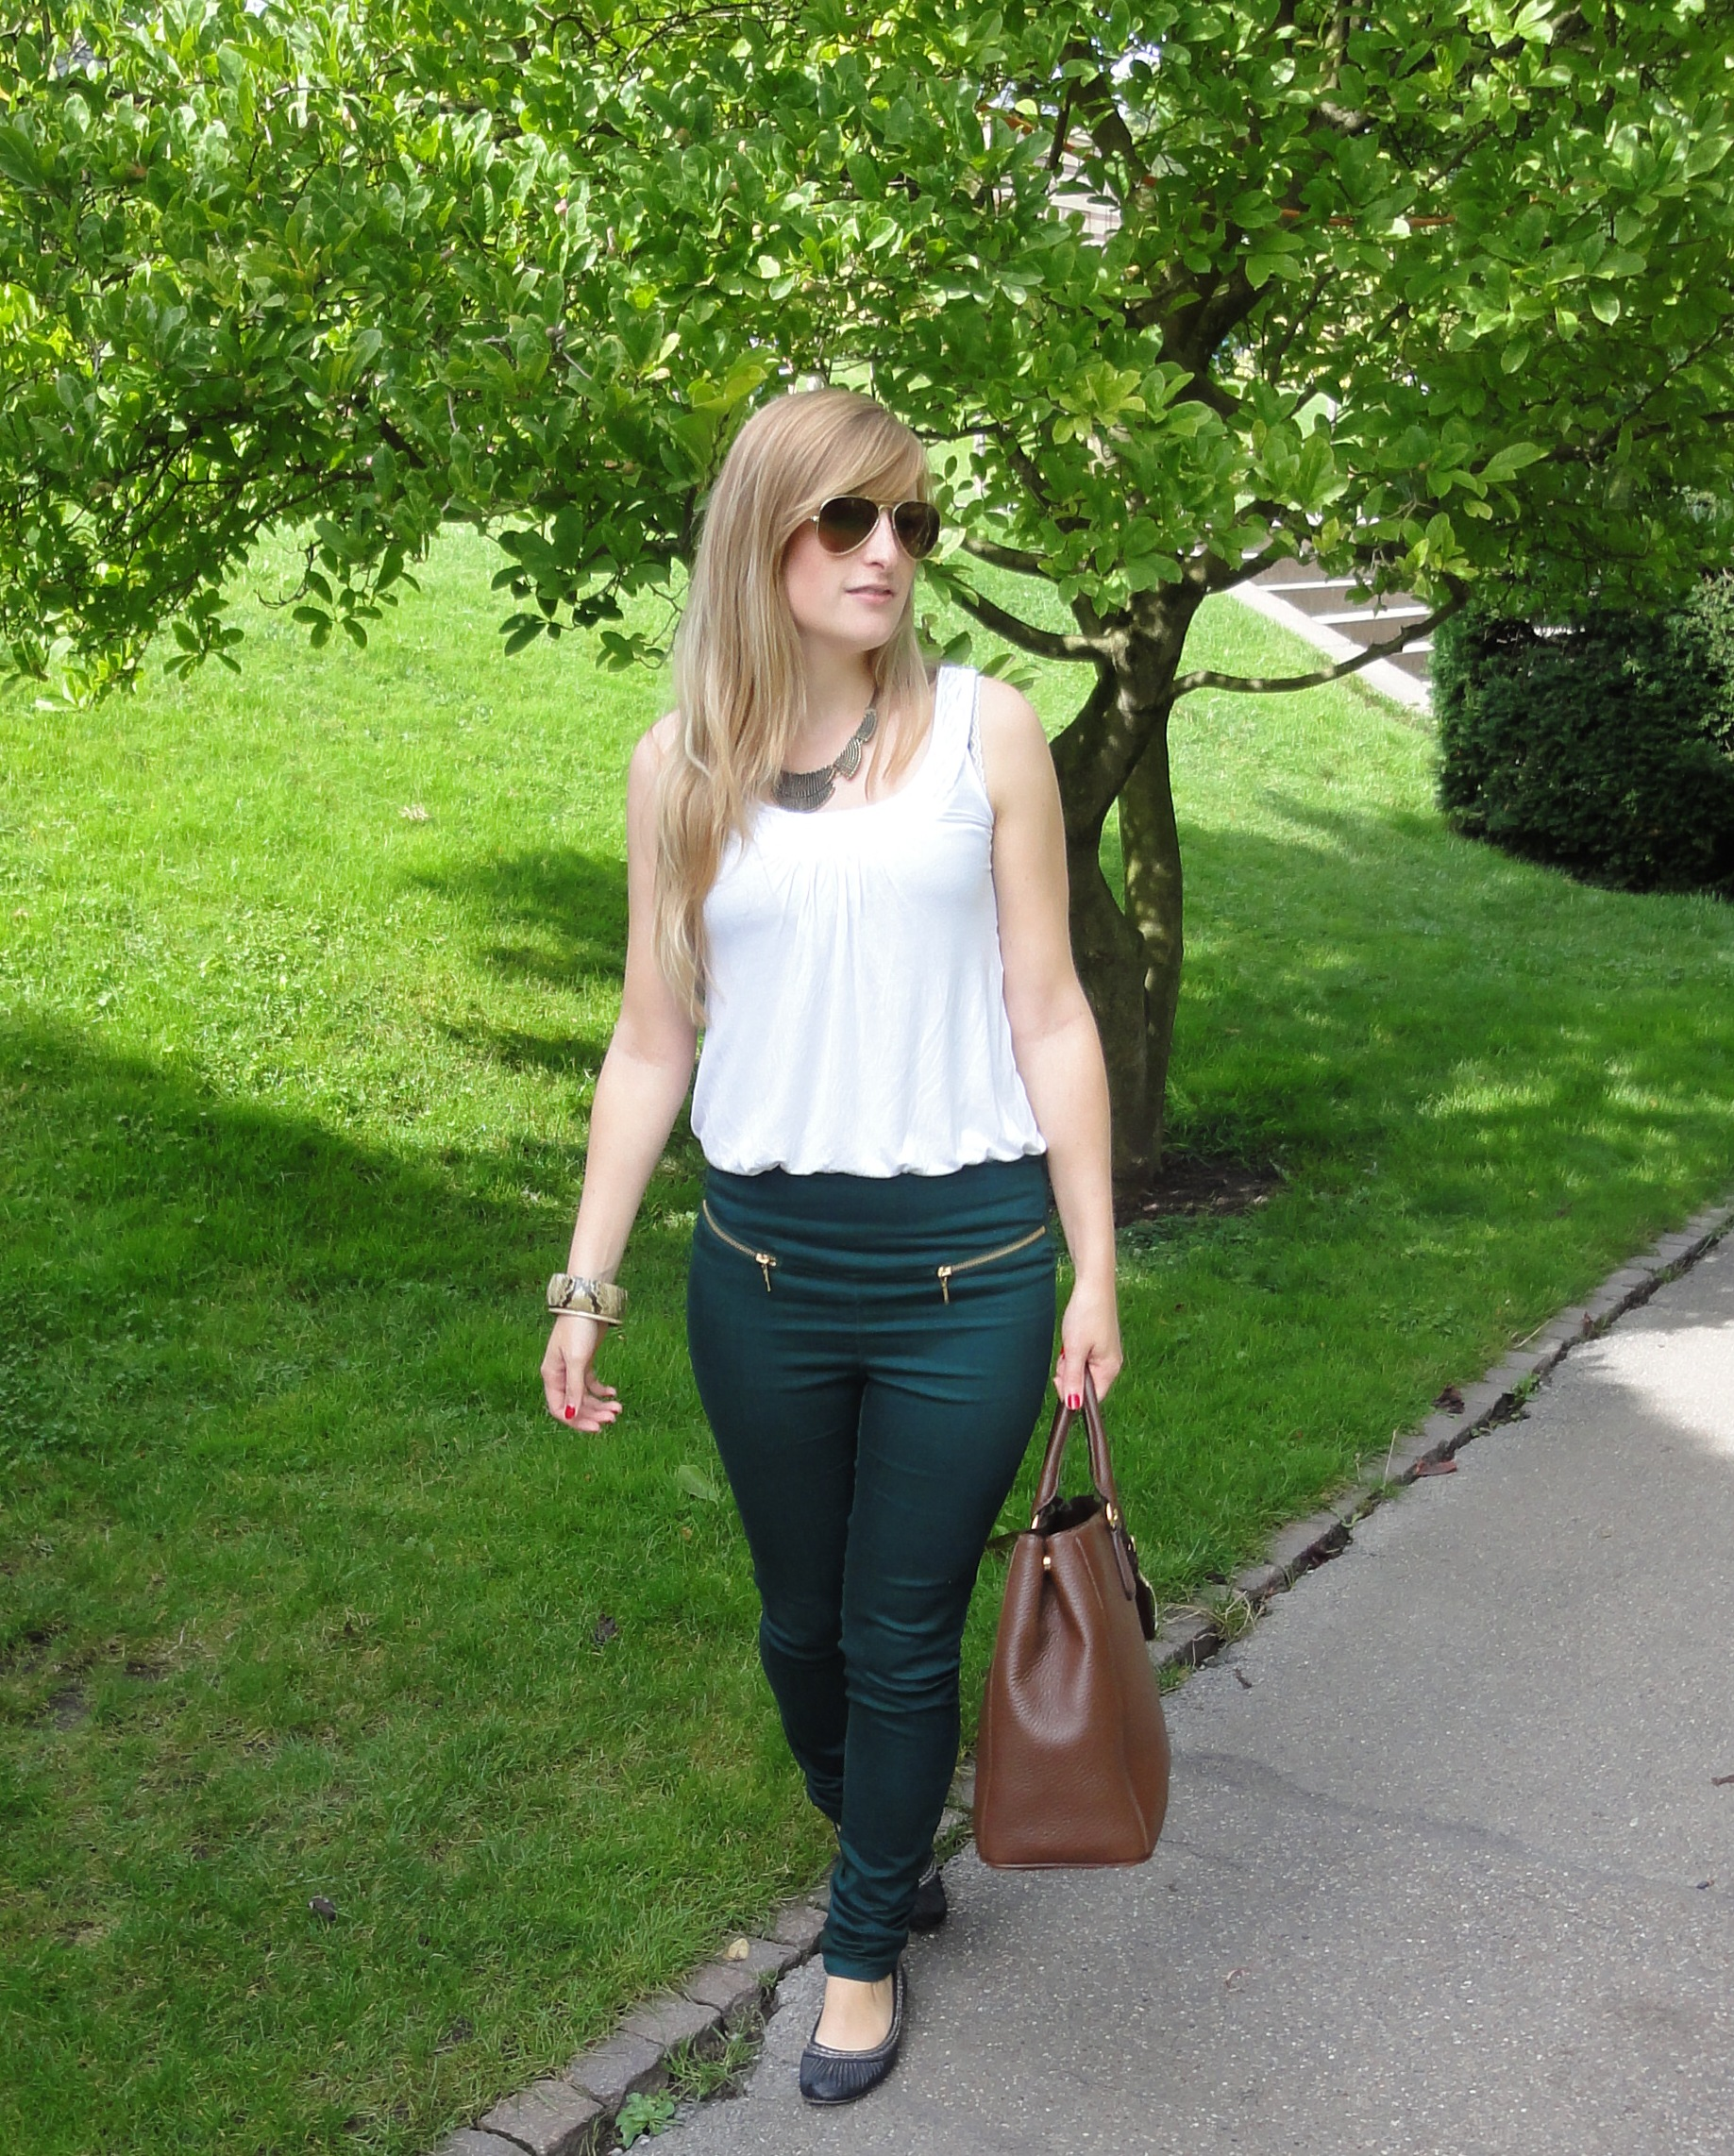 High waist trousers in Stuttgart